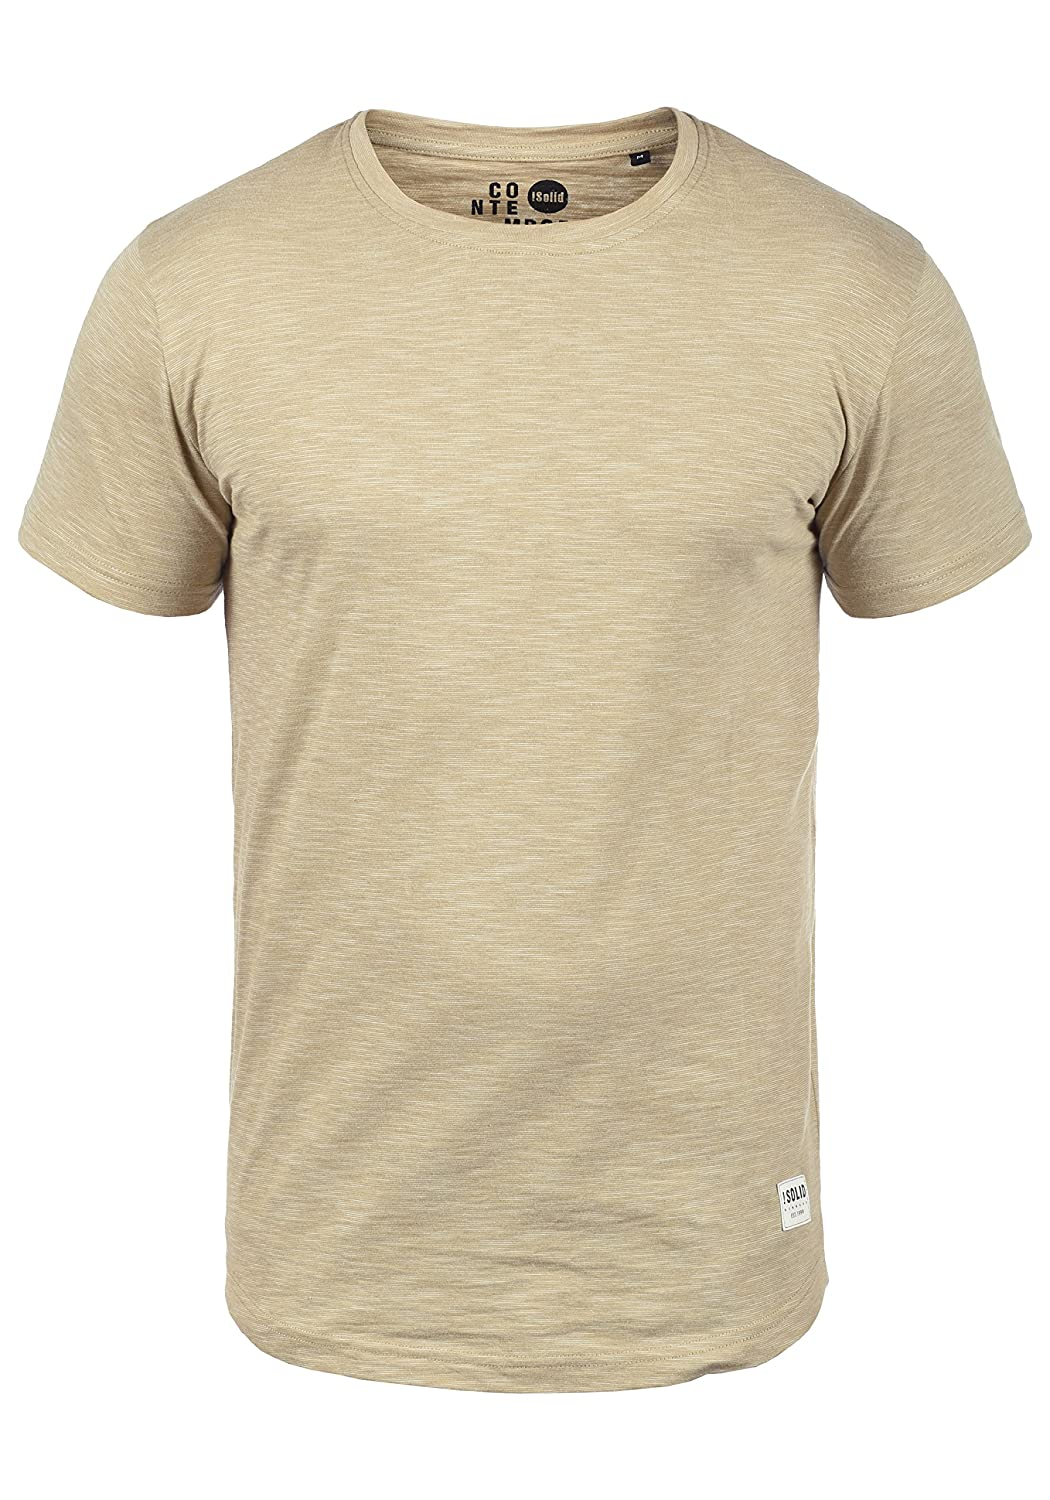 5217ddbe51fdc Solid Figos - T-Shirt - Homme !